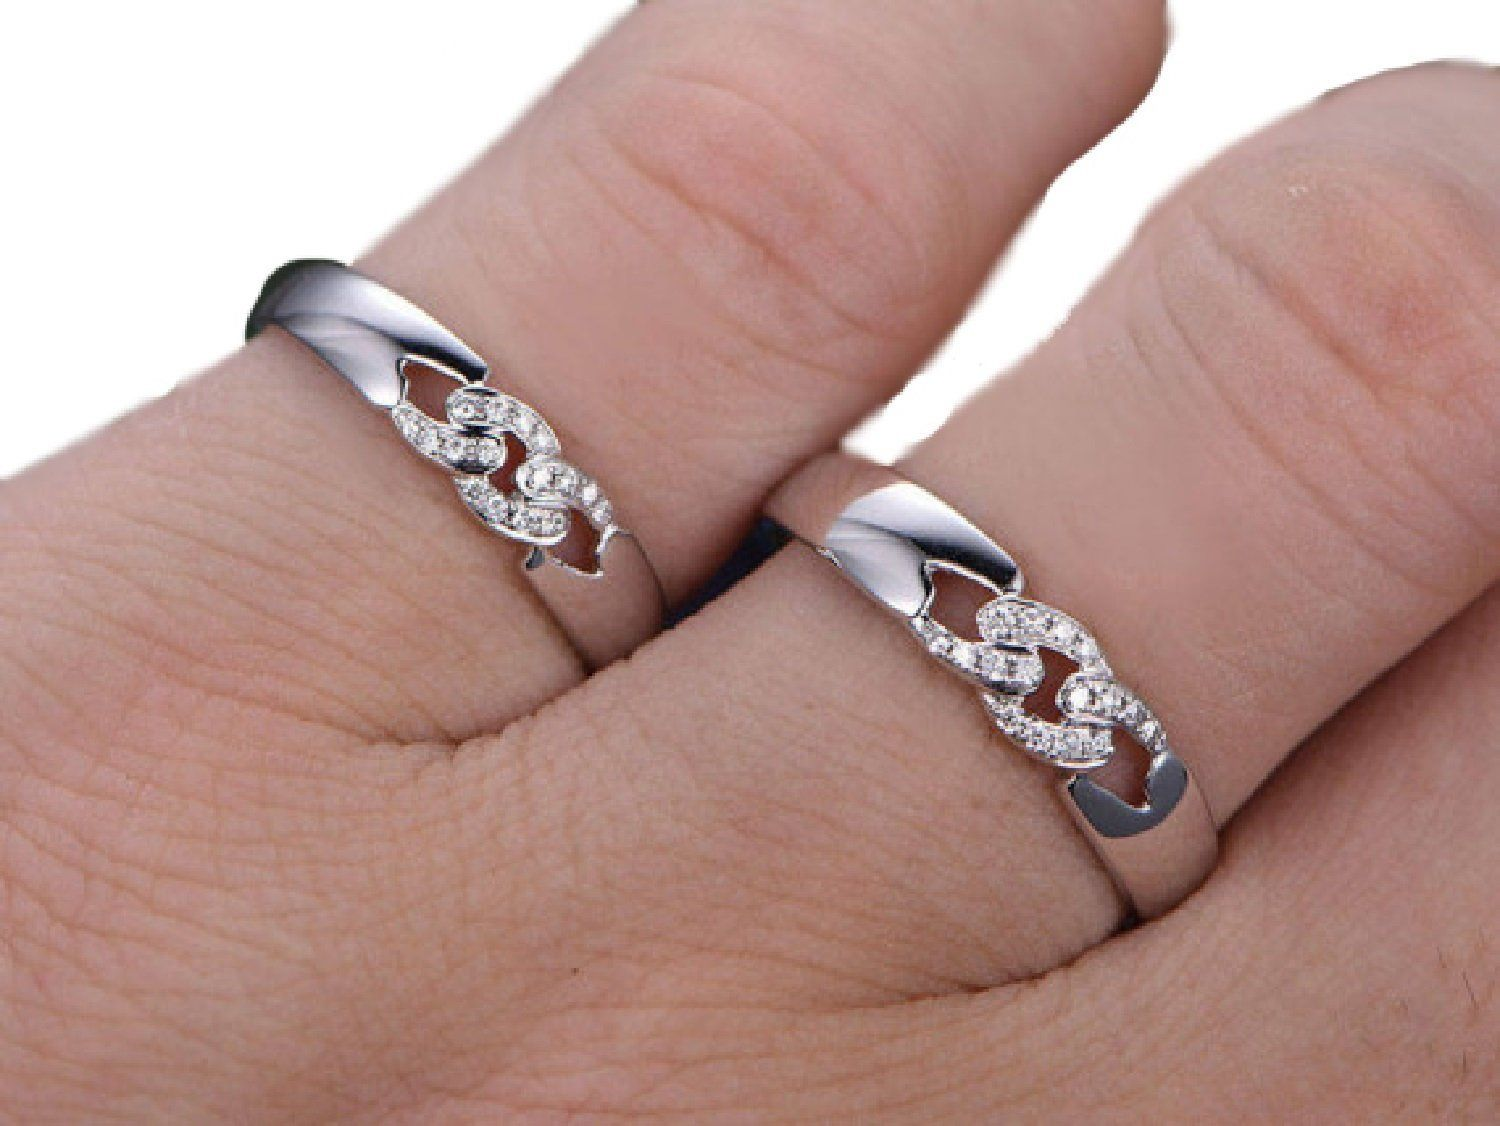 Natural Diamonds 14k Solid White Gold His & Her Ring Set